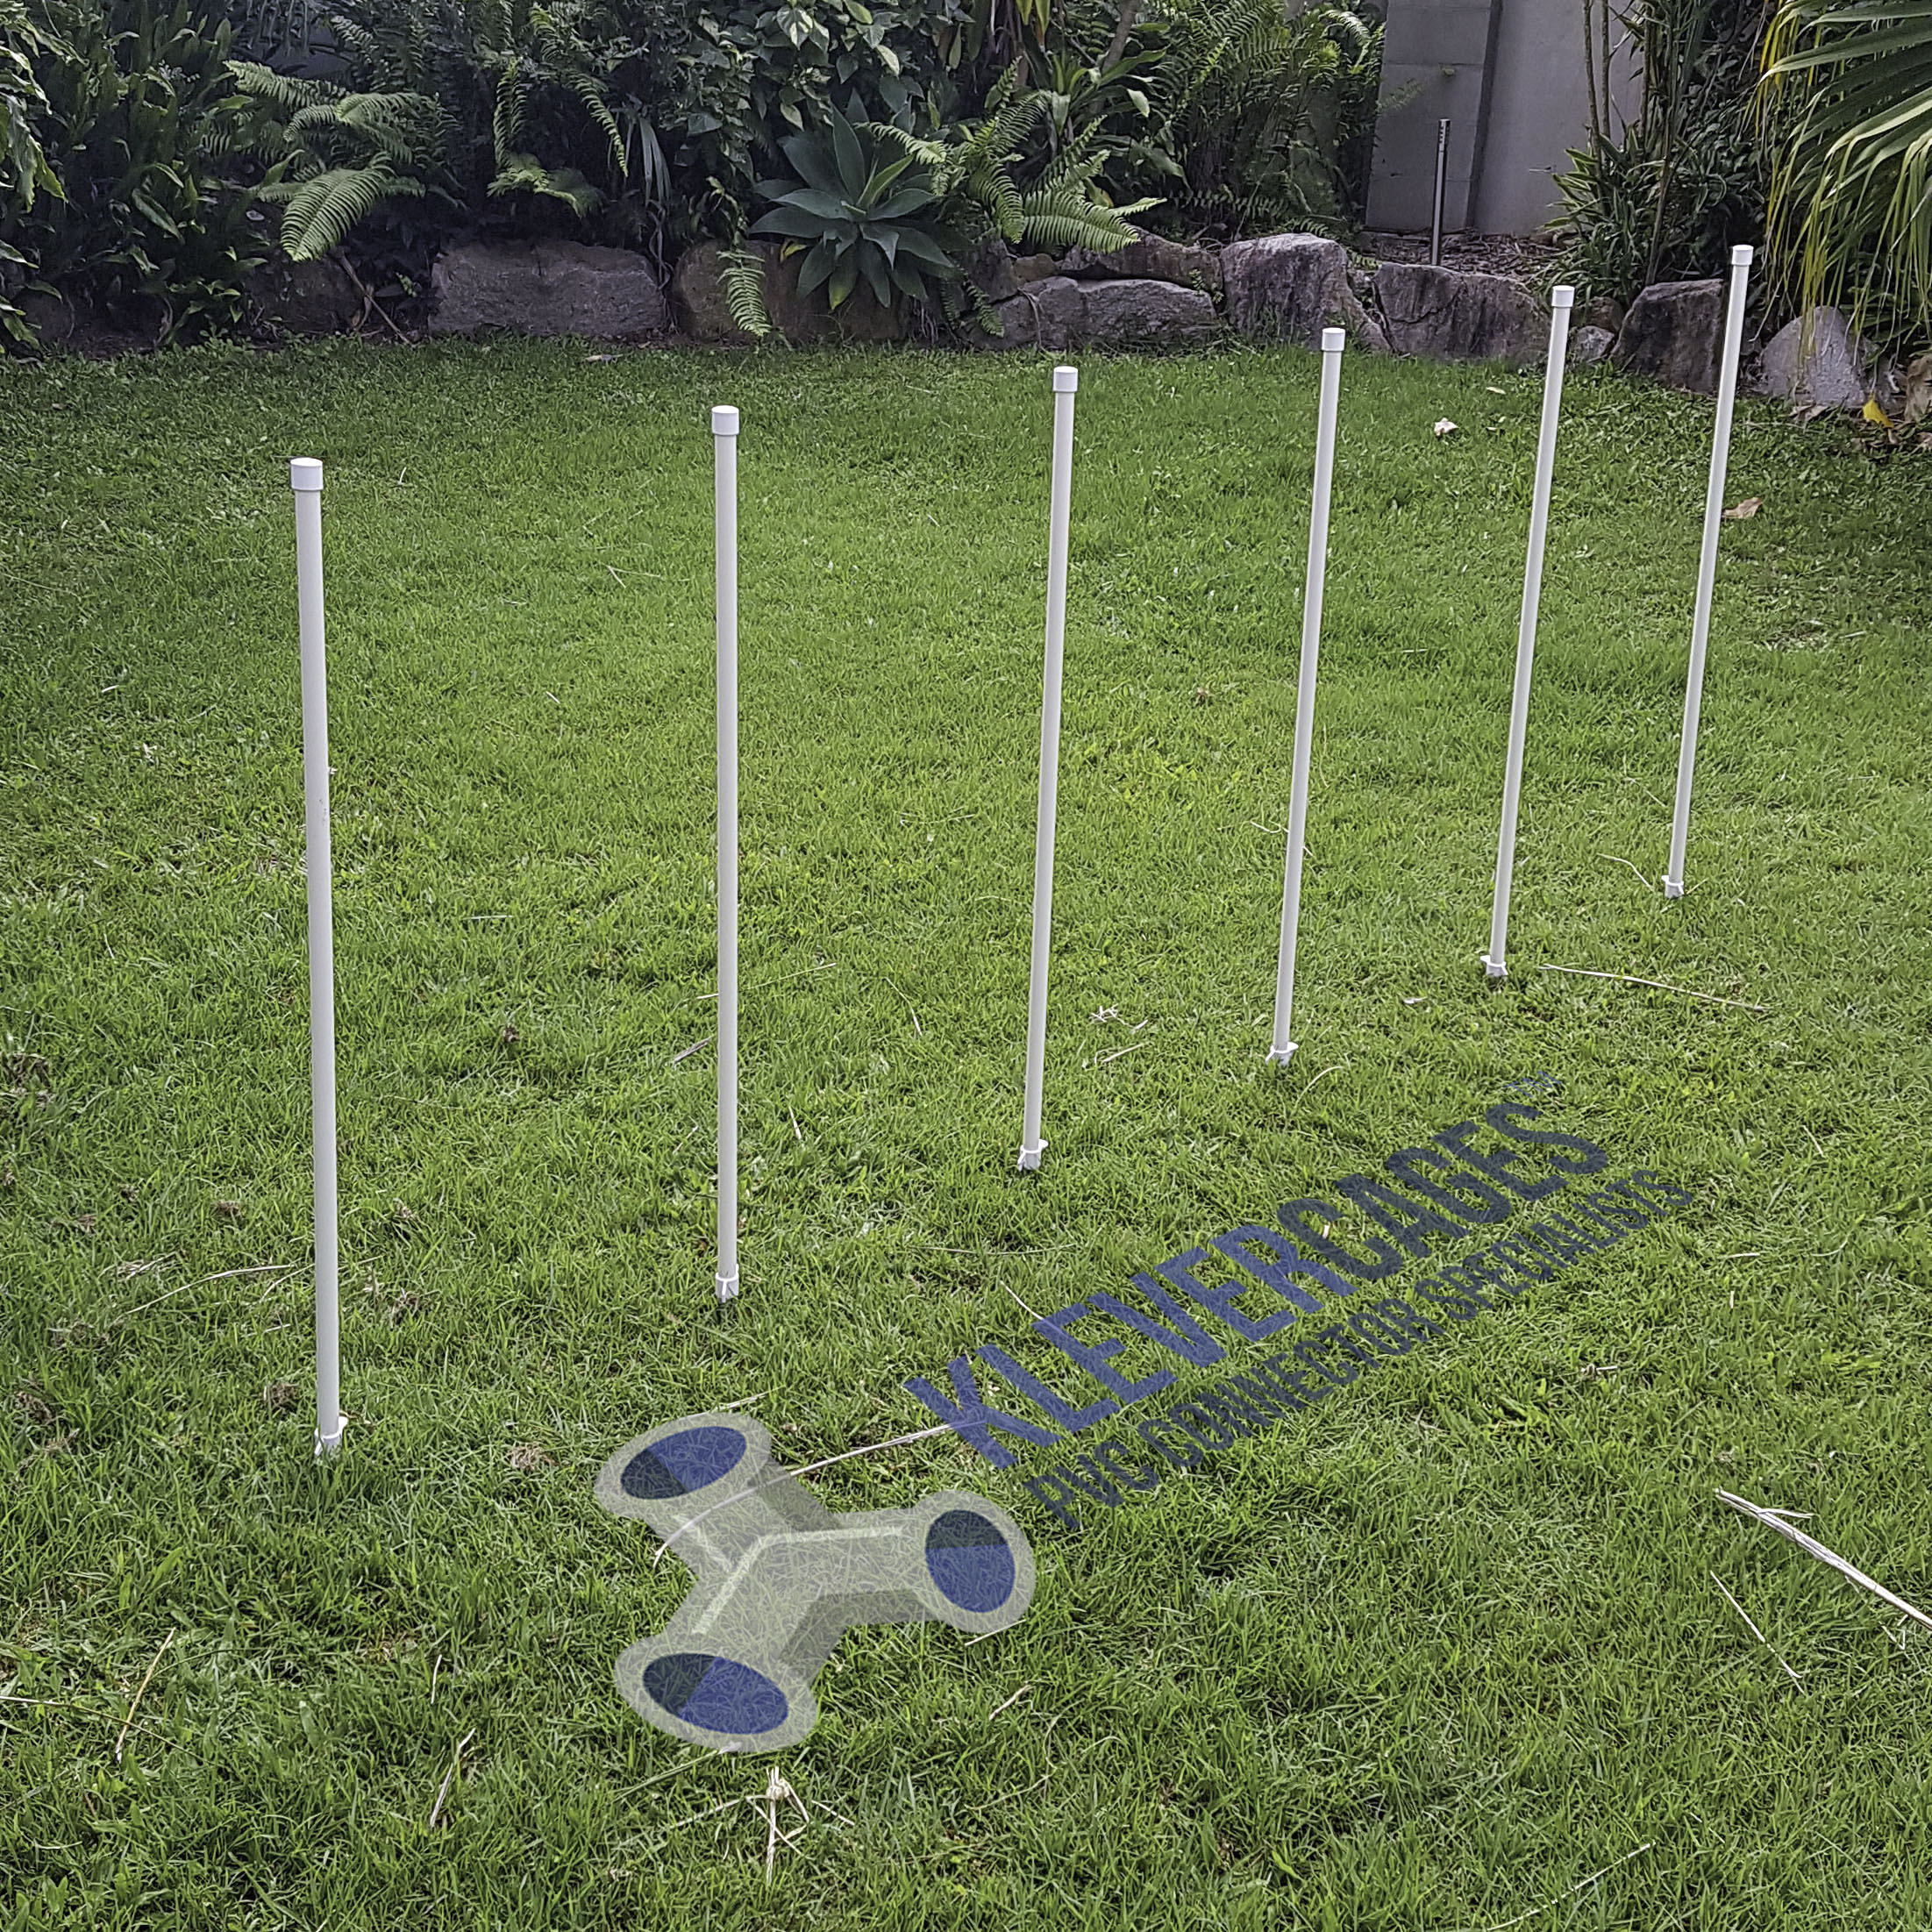 6 dog agility weave poles available in a kit for a agility course. White  PVC pipes caps and stakes from Klever Cages Australia